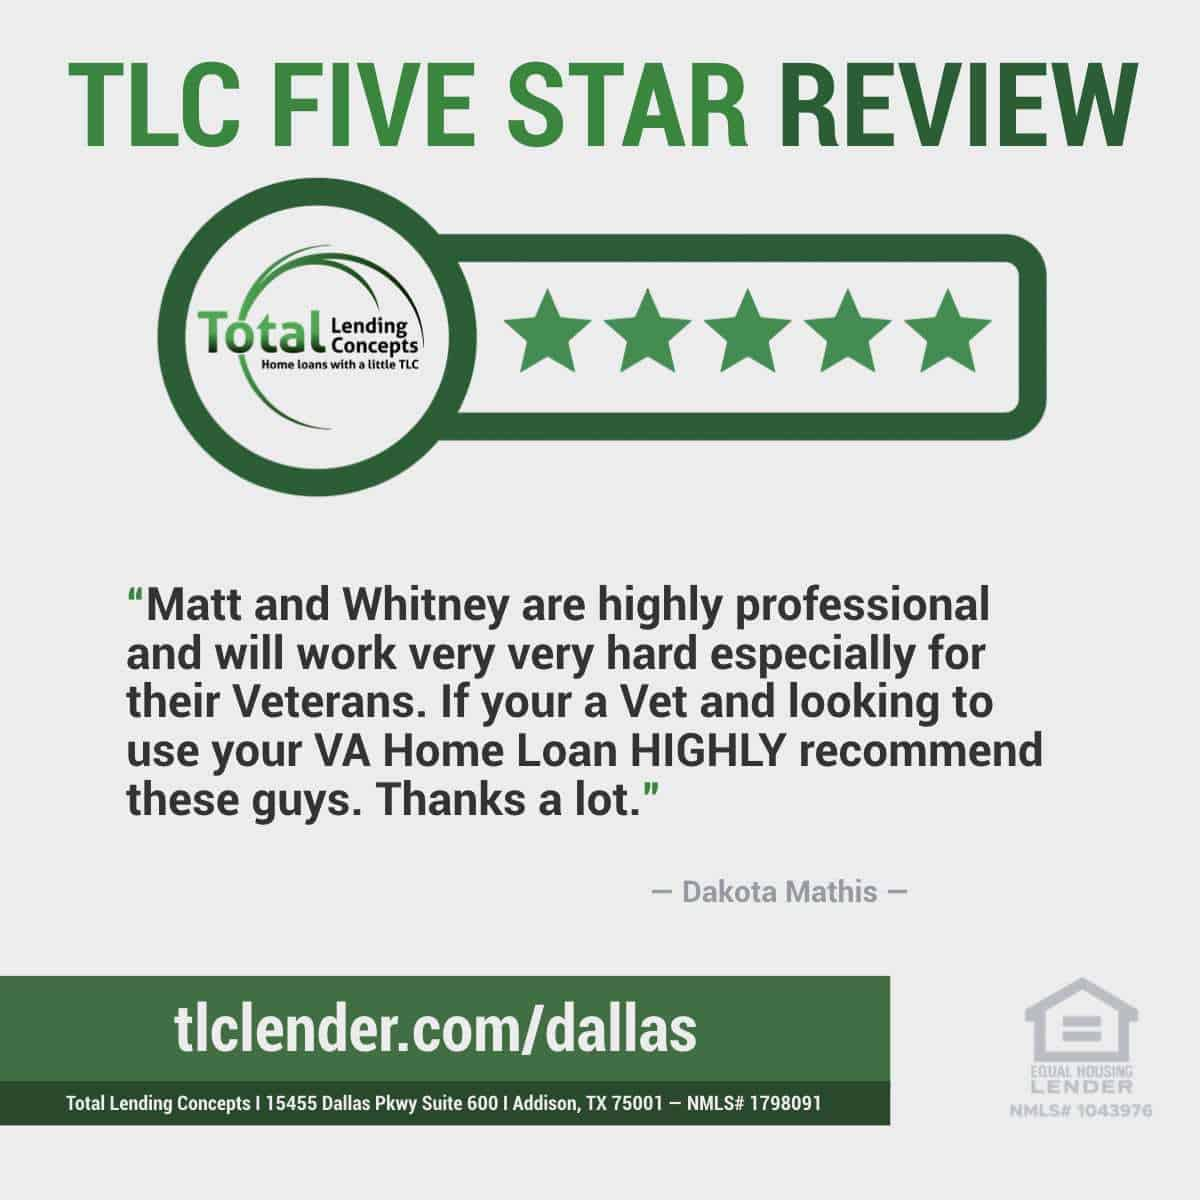 Total-Lending-Concepts-Five-Star-Review-Dakota-Mathis-in-Addison-Texas-for-Matt-and-Whitney-VA-Home